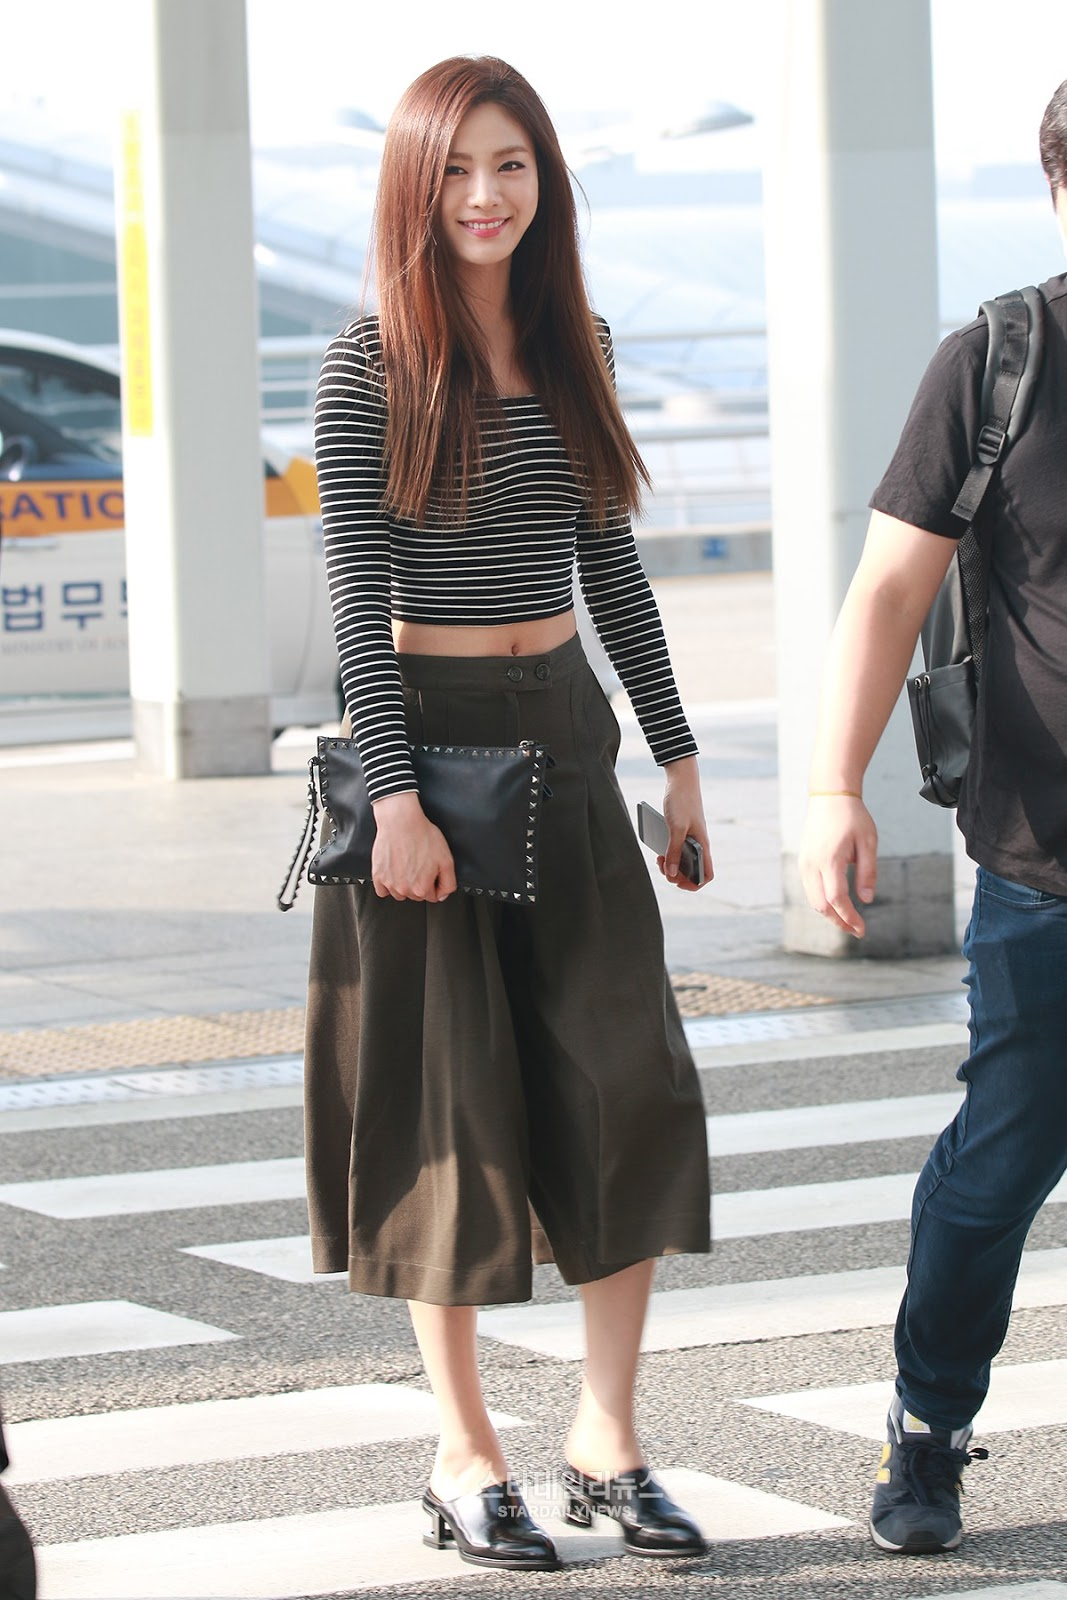 Nana After School Airport Fashion